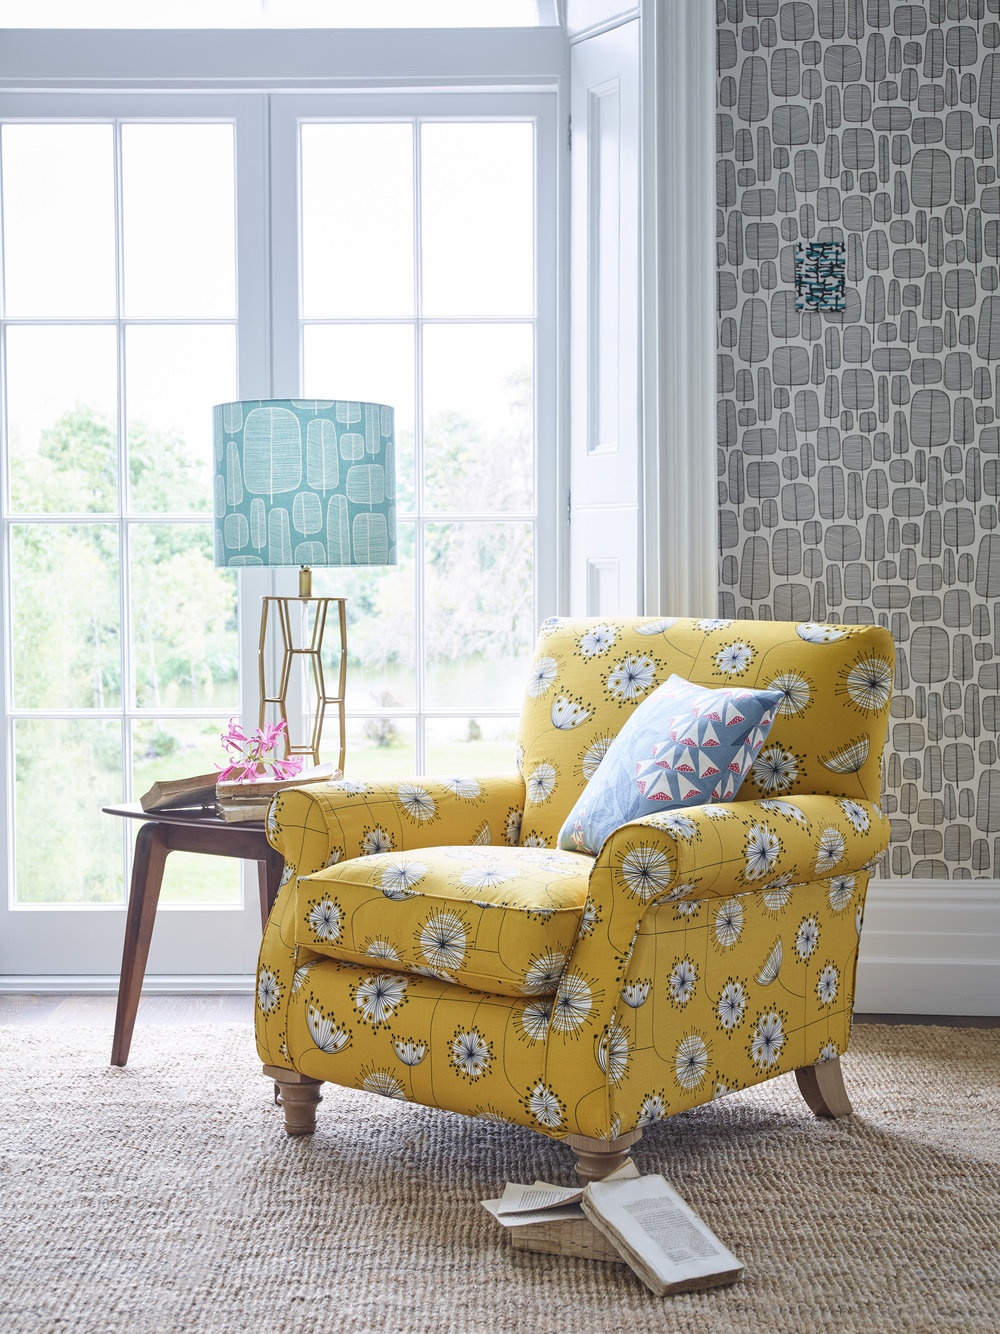 "Halstead Chair in Dandelion Mobile Sunflower Yellow and White Fabric £889, 17"" Scatter in Foxglove Tiki Fabric £59."